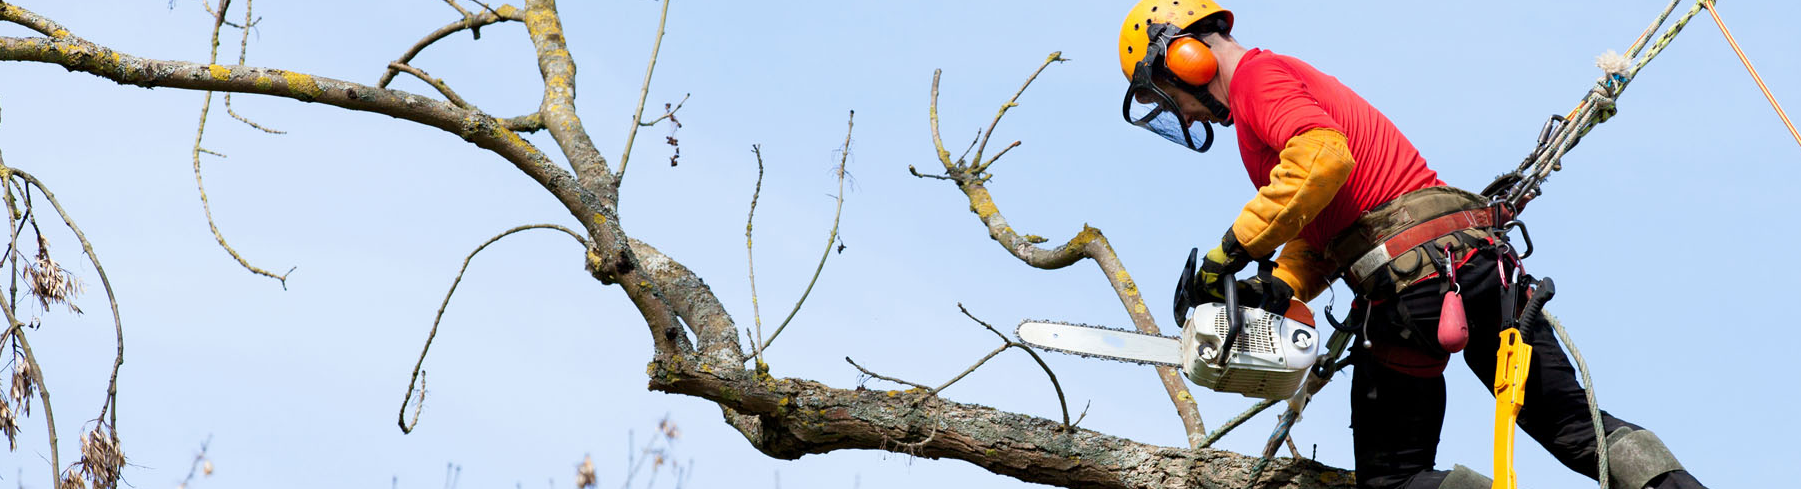 South Carolina's Top Rated Local® Tree Care Companies Award Winner: New Leaf Tree Service